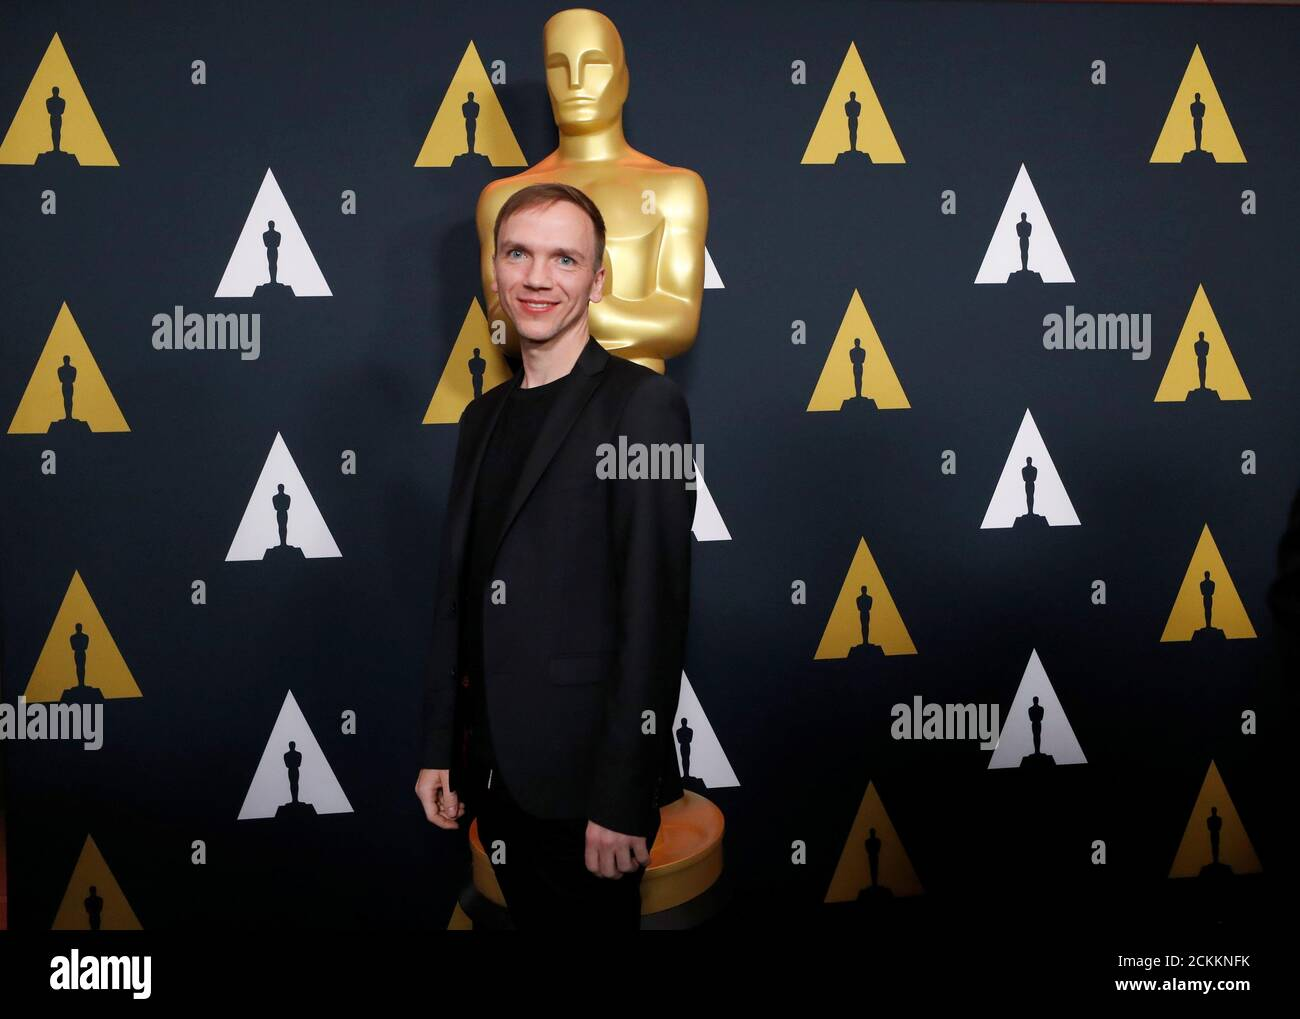 "Polish director Jan Komasa, nominated for Best international feature film for ""Corpus Christi,"" poses at a reception at the Academy of Motion Picture Arts and Sciences in Beverly Hills, California, U.S., February 6, 2020. REUTERS/Mario Anzuoni Stock Photo"